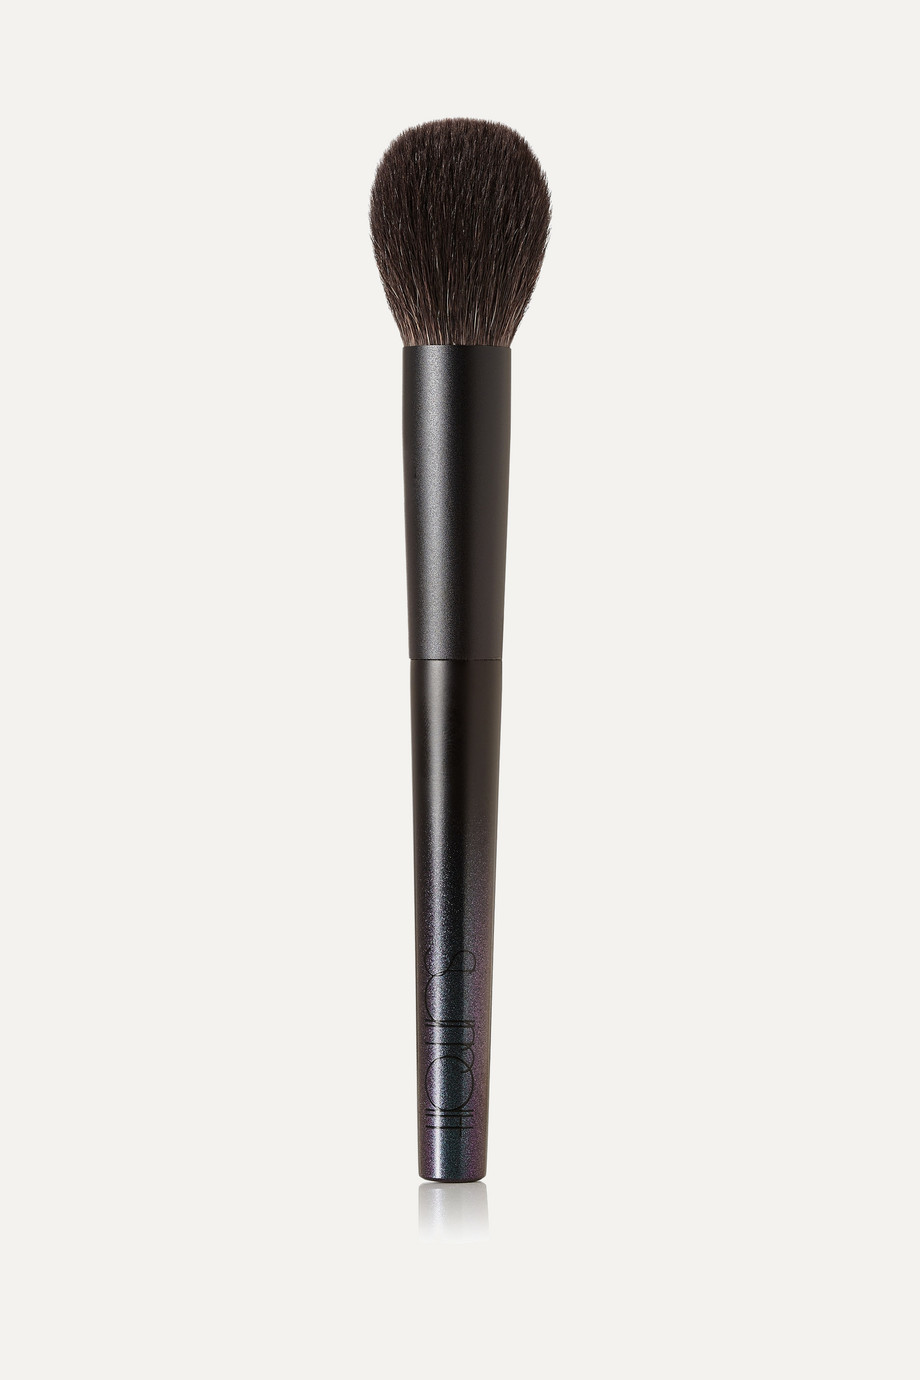 Artistique Cheek Brush, by Surratt Beauty